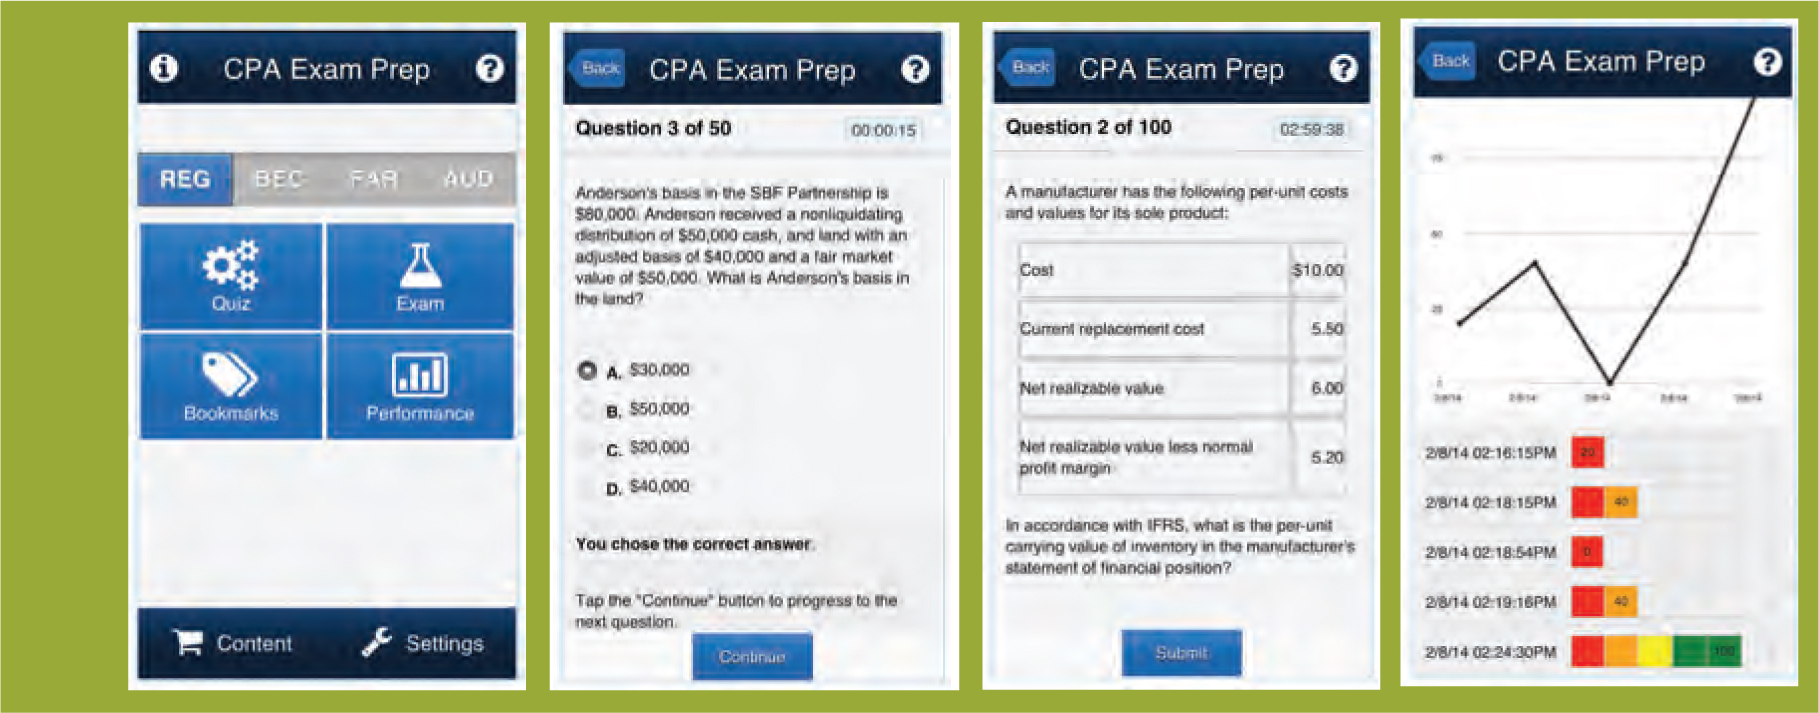 Free CPA Exam Resources - The CPA Journal